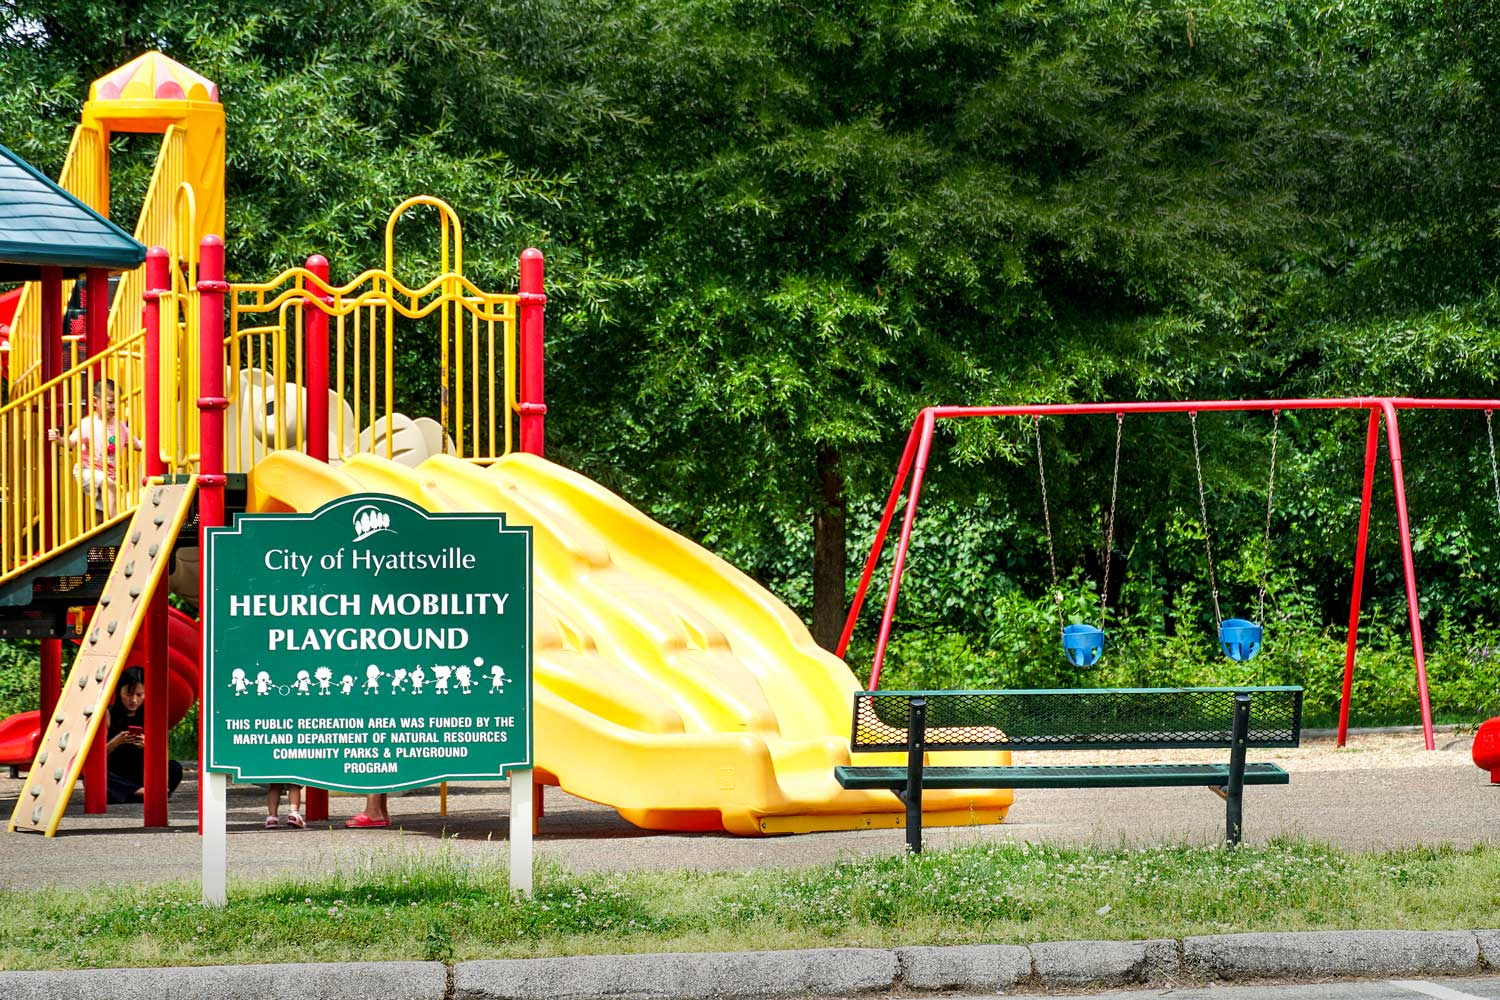 Heurich Park is within walking distance from Kirkwood Apartments in Hyattsville, MD